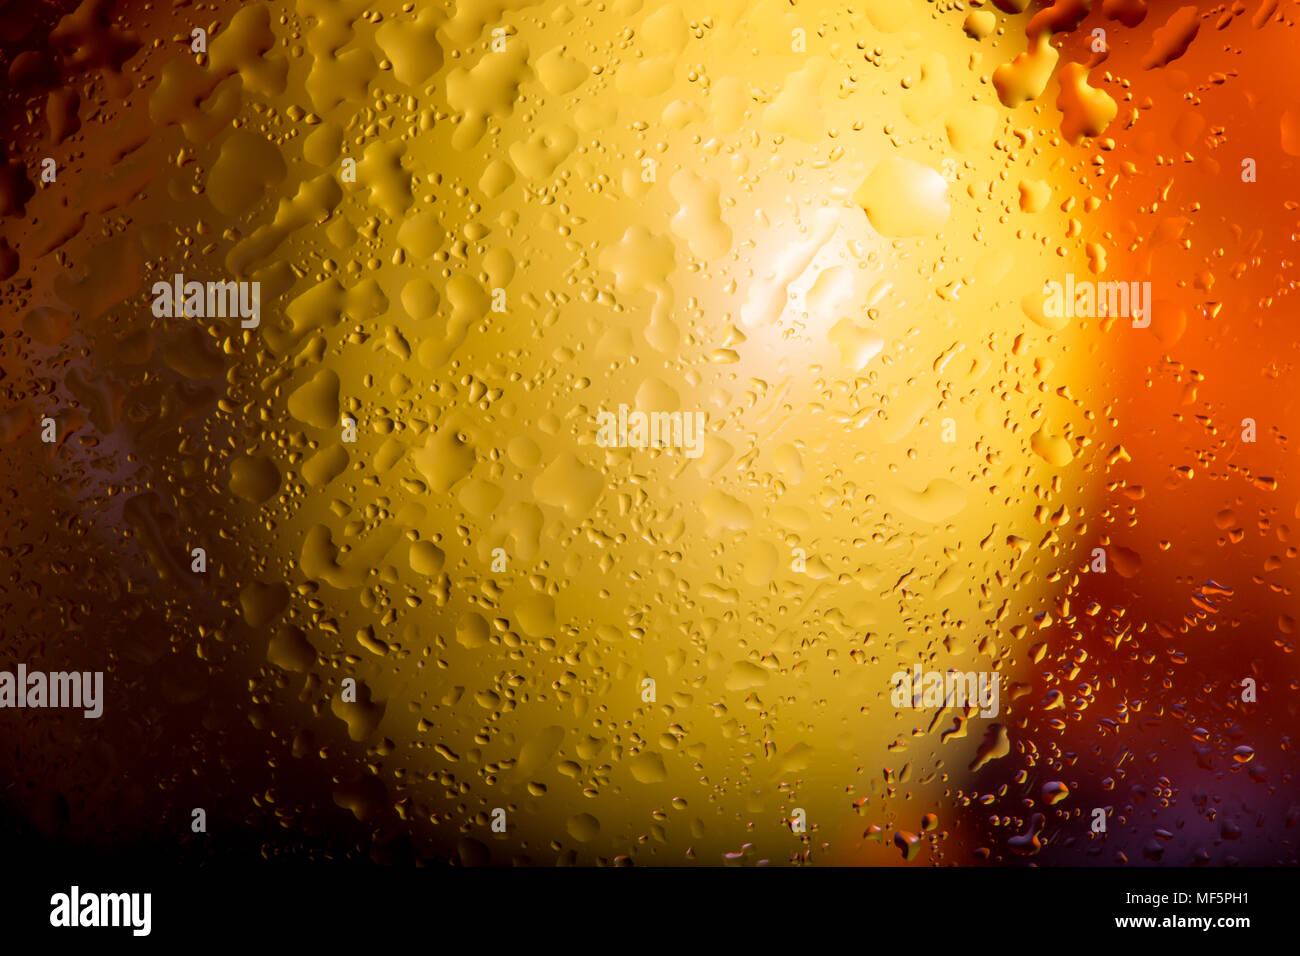 Colourful landscape shot: lemon & orange fresh fruit behind obscured, wet glass. Interesting screen saver design. Abstract / background capture. - Stock Image